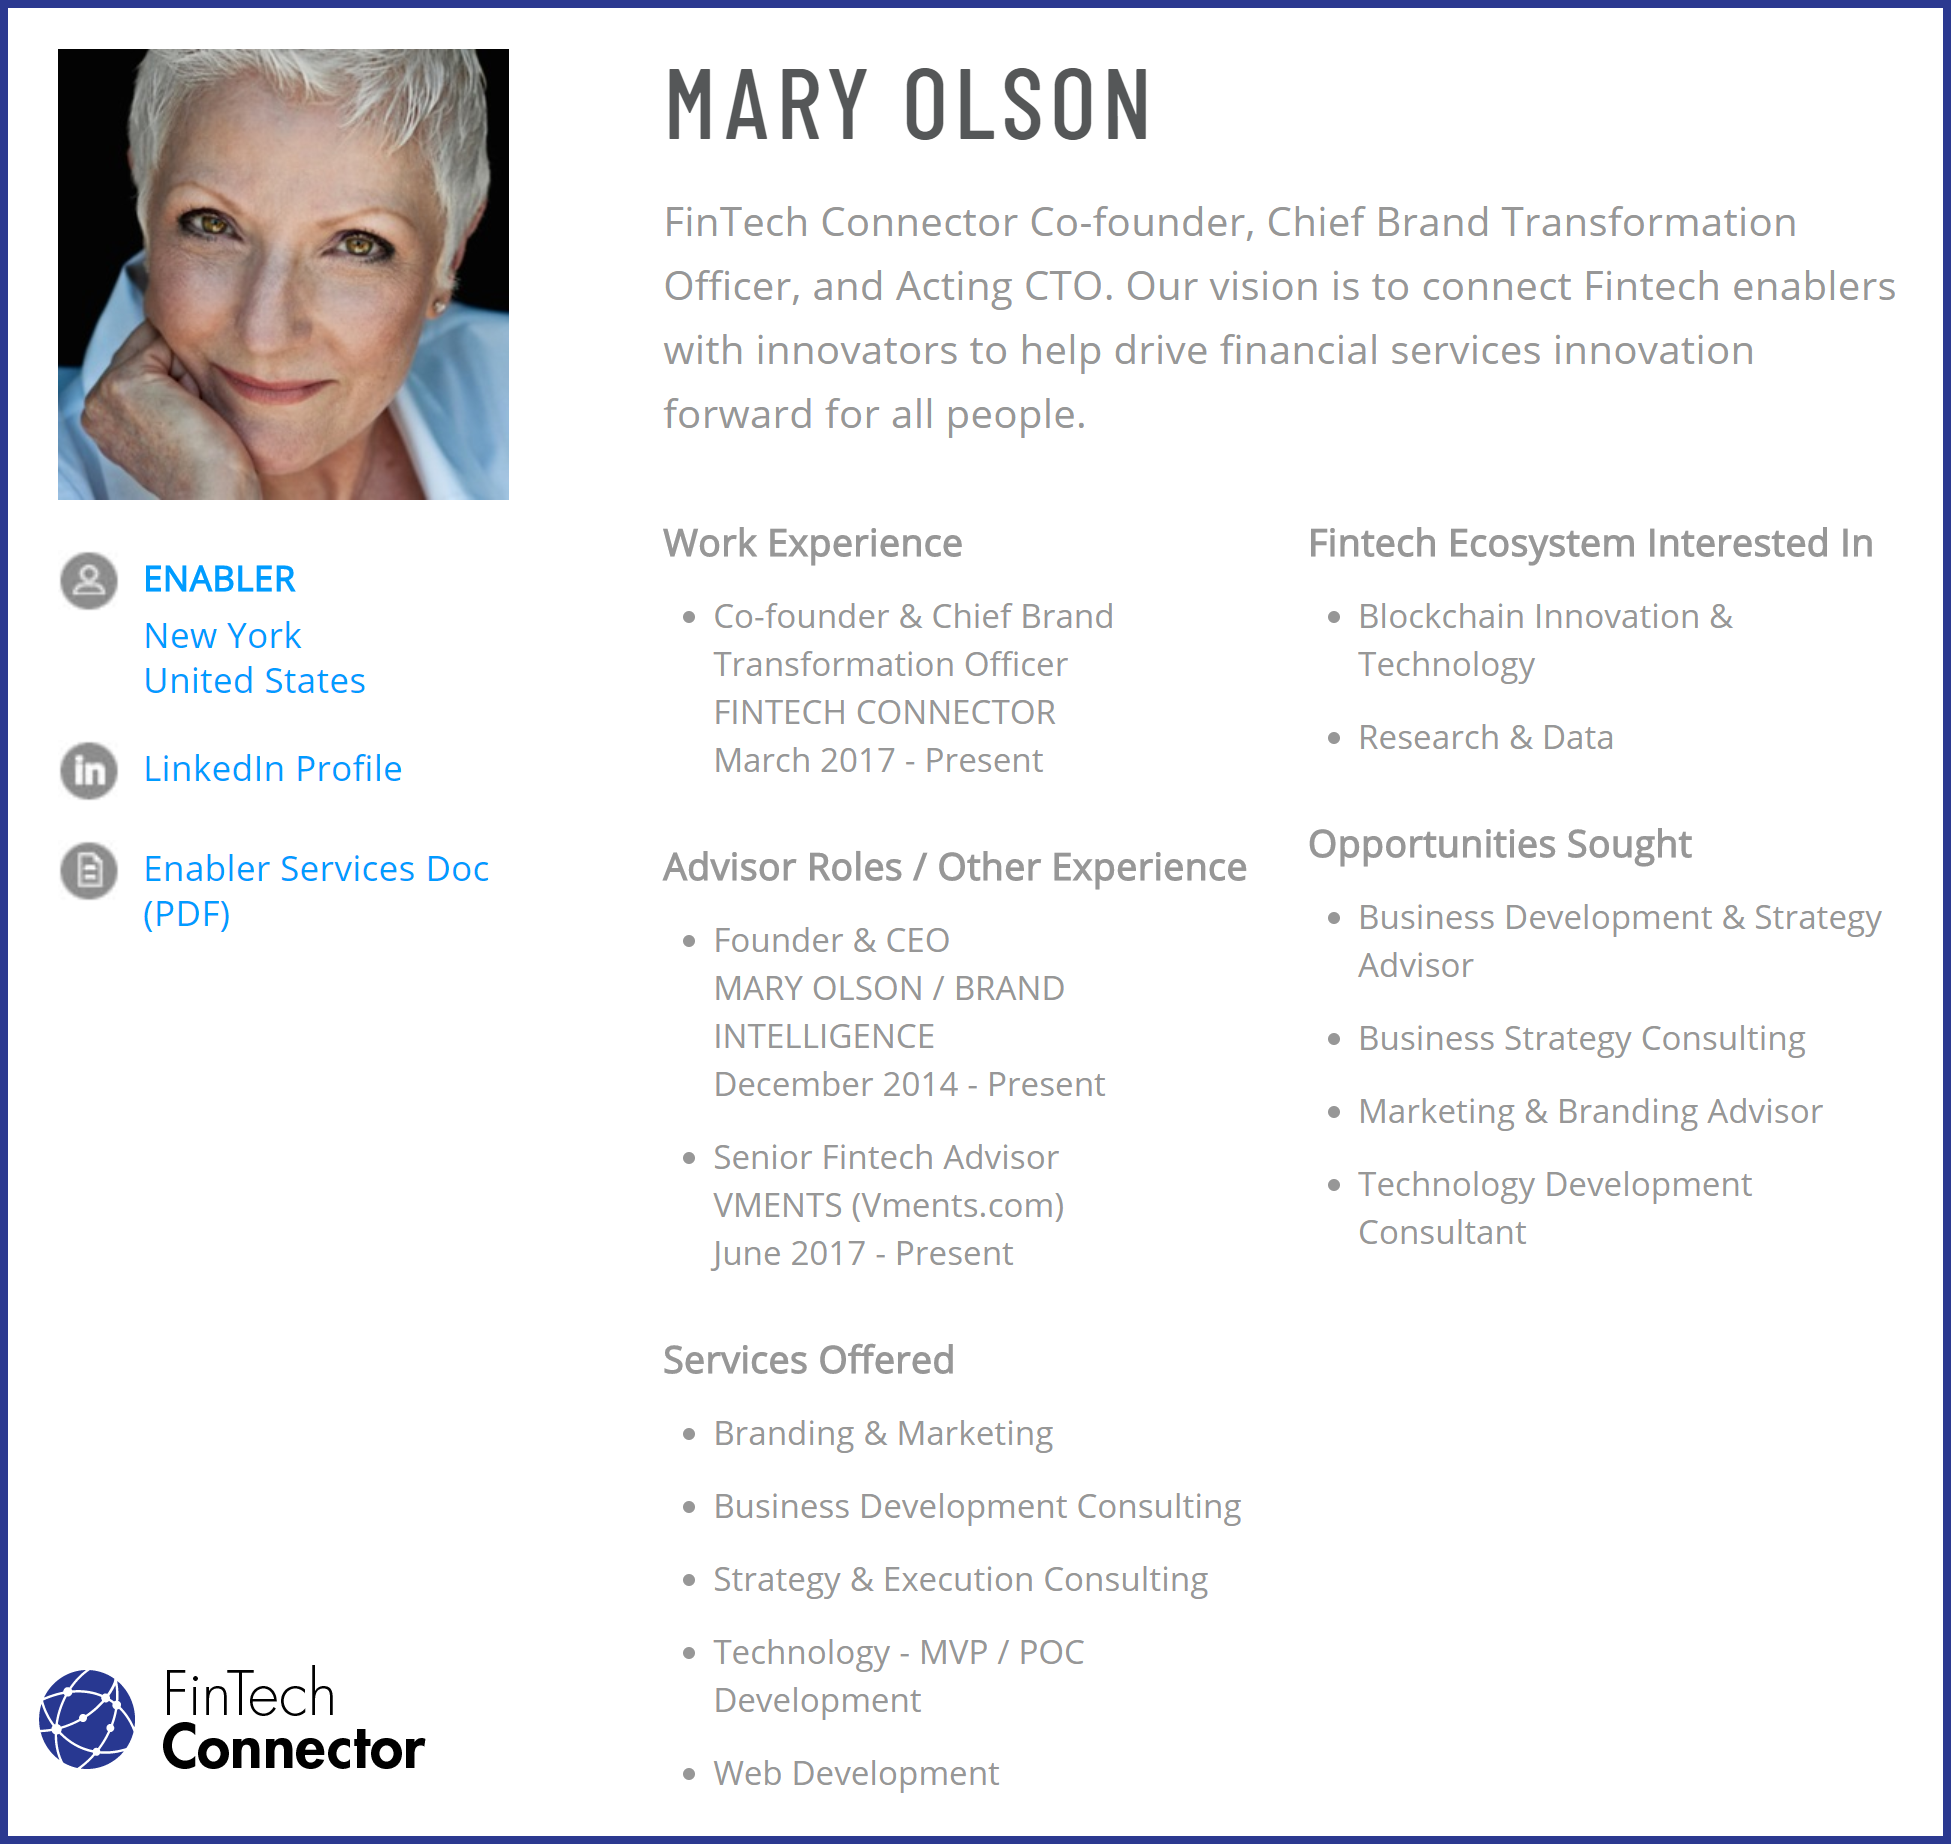 Connect with Mary Olson via FinTech Connector